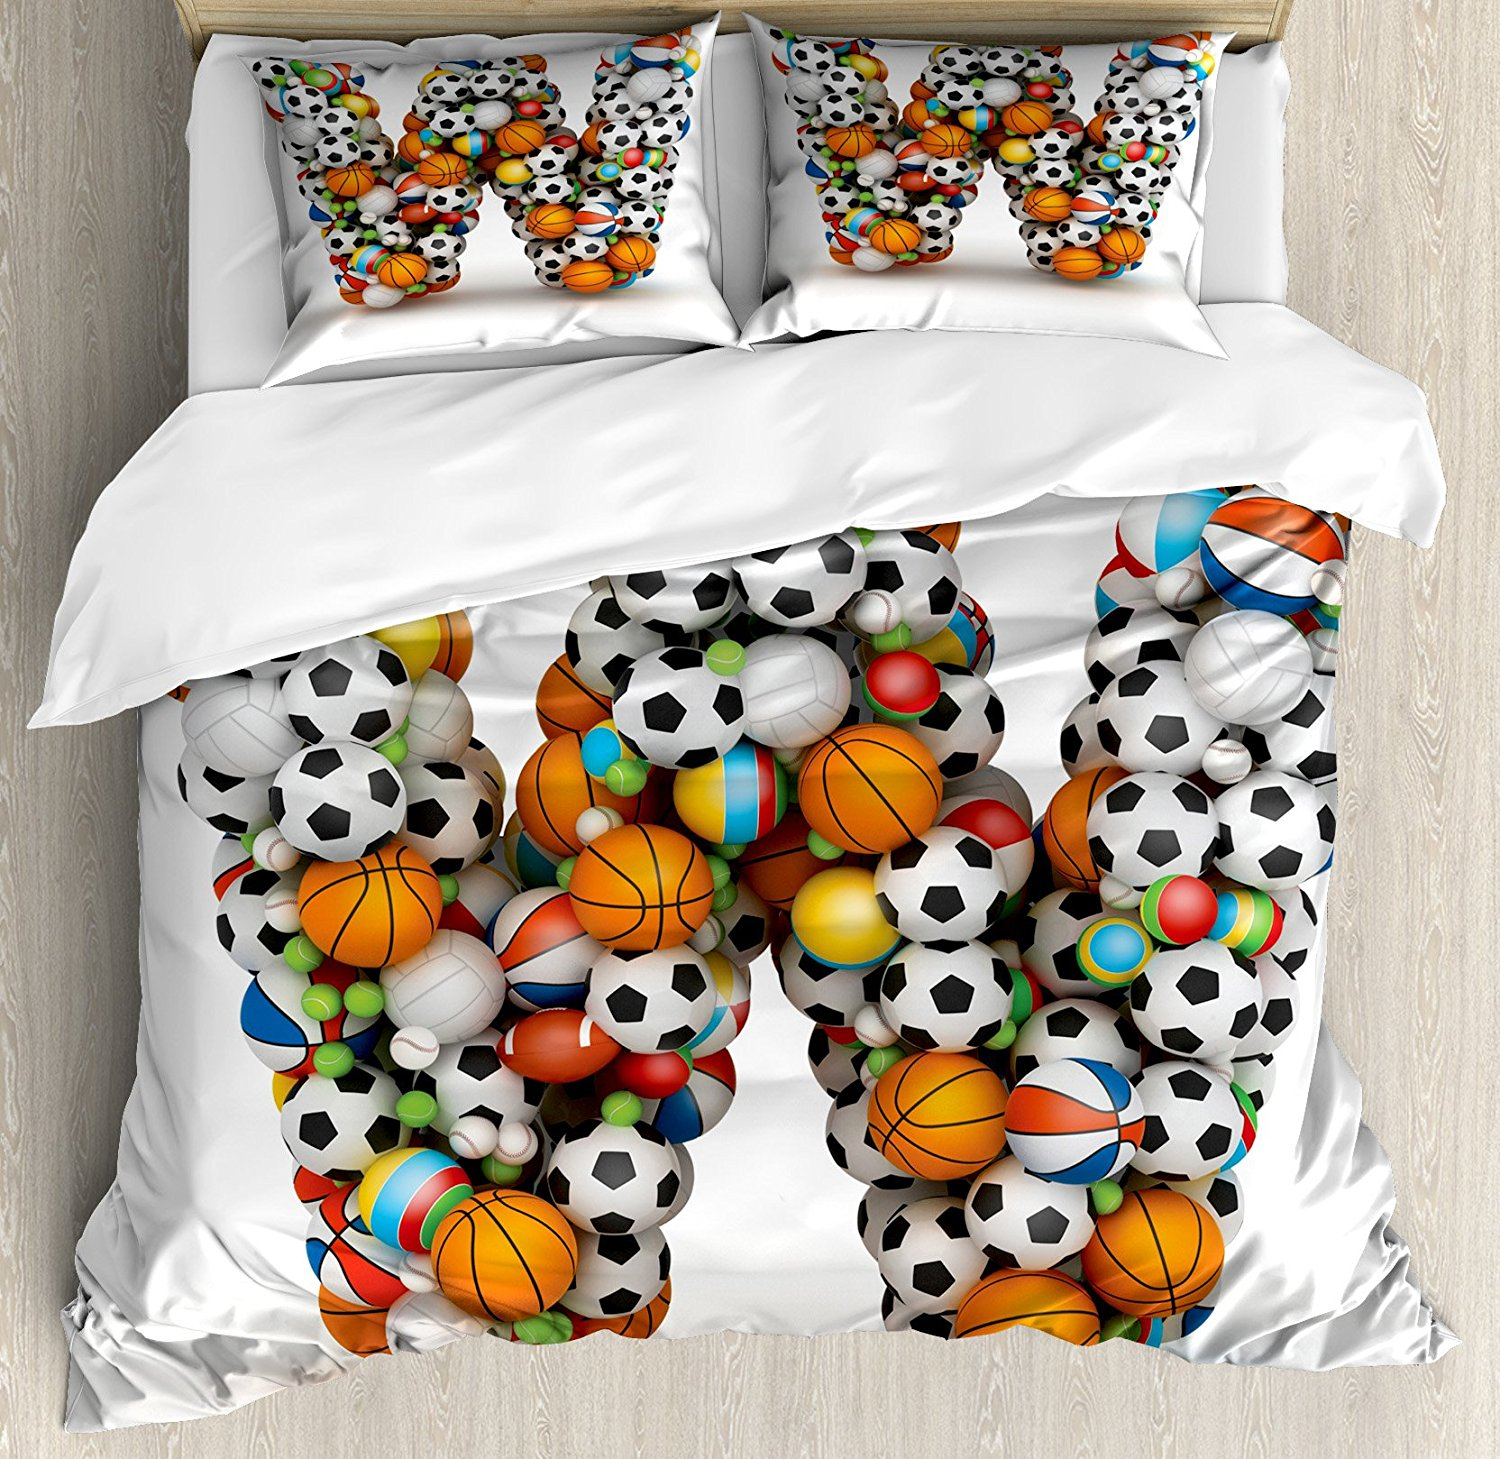 Letter W Duvet Cover Set Sports Themed Typography Alphabet Symbol With Various Athletics Kids Design 4 Piece Bedding In Sets From Home